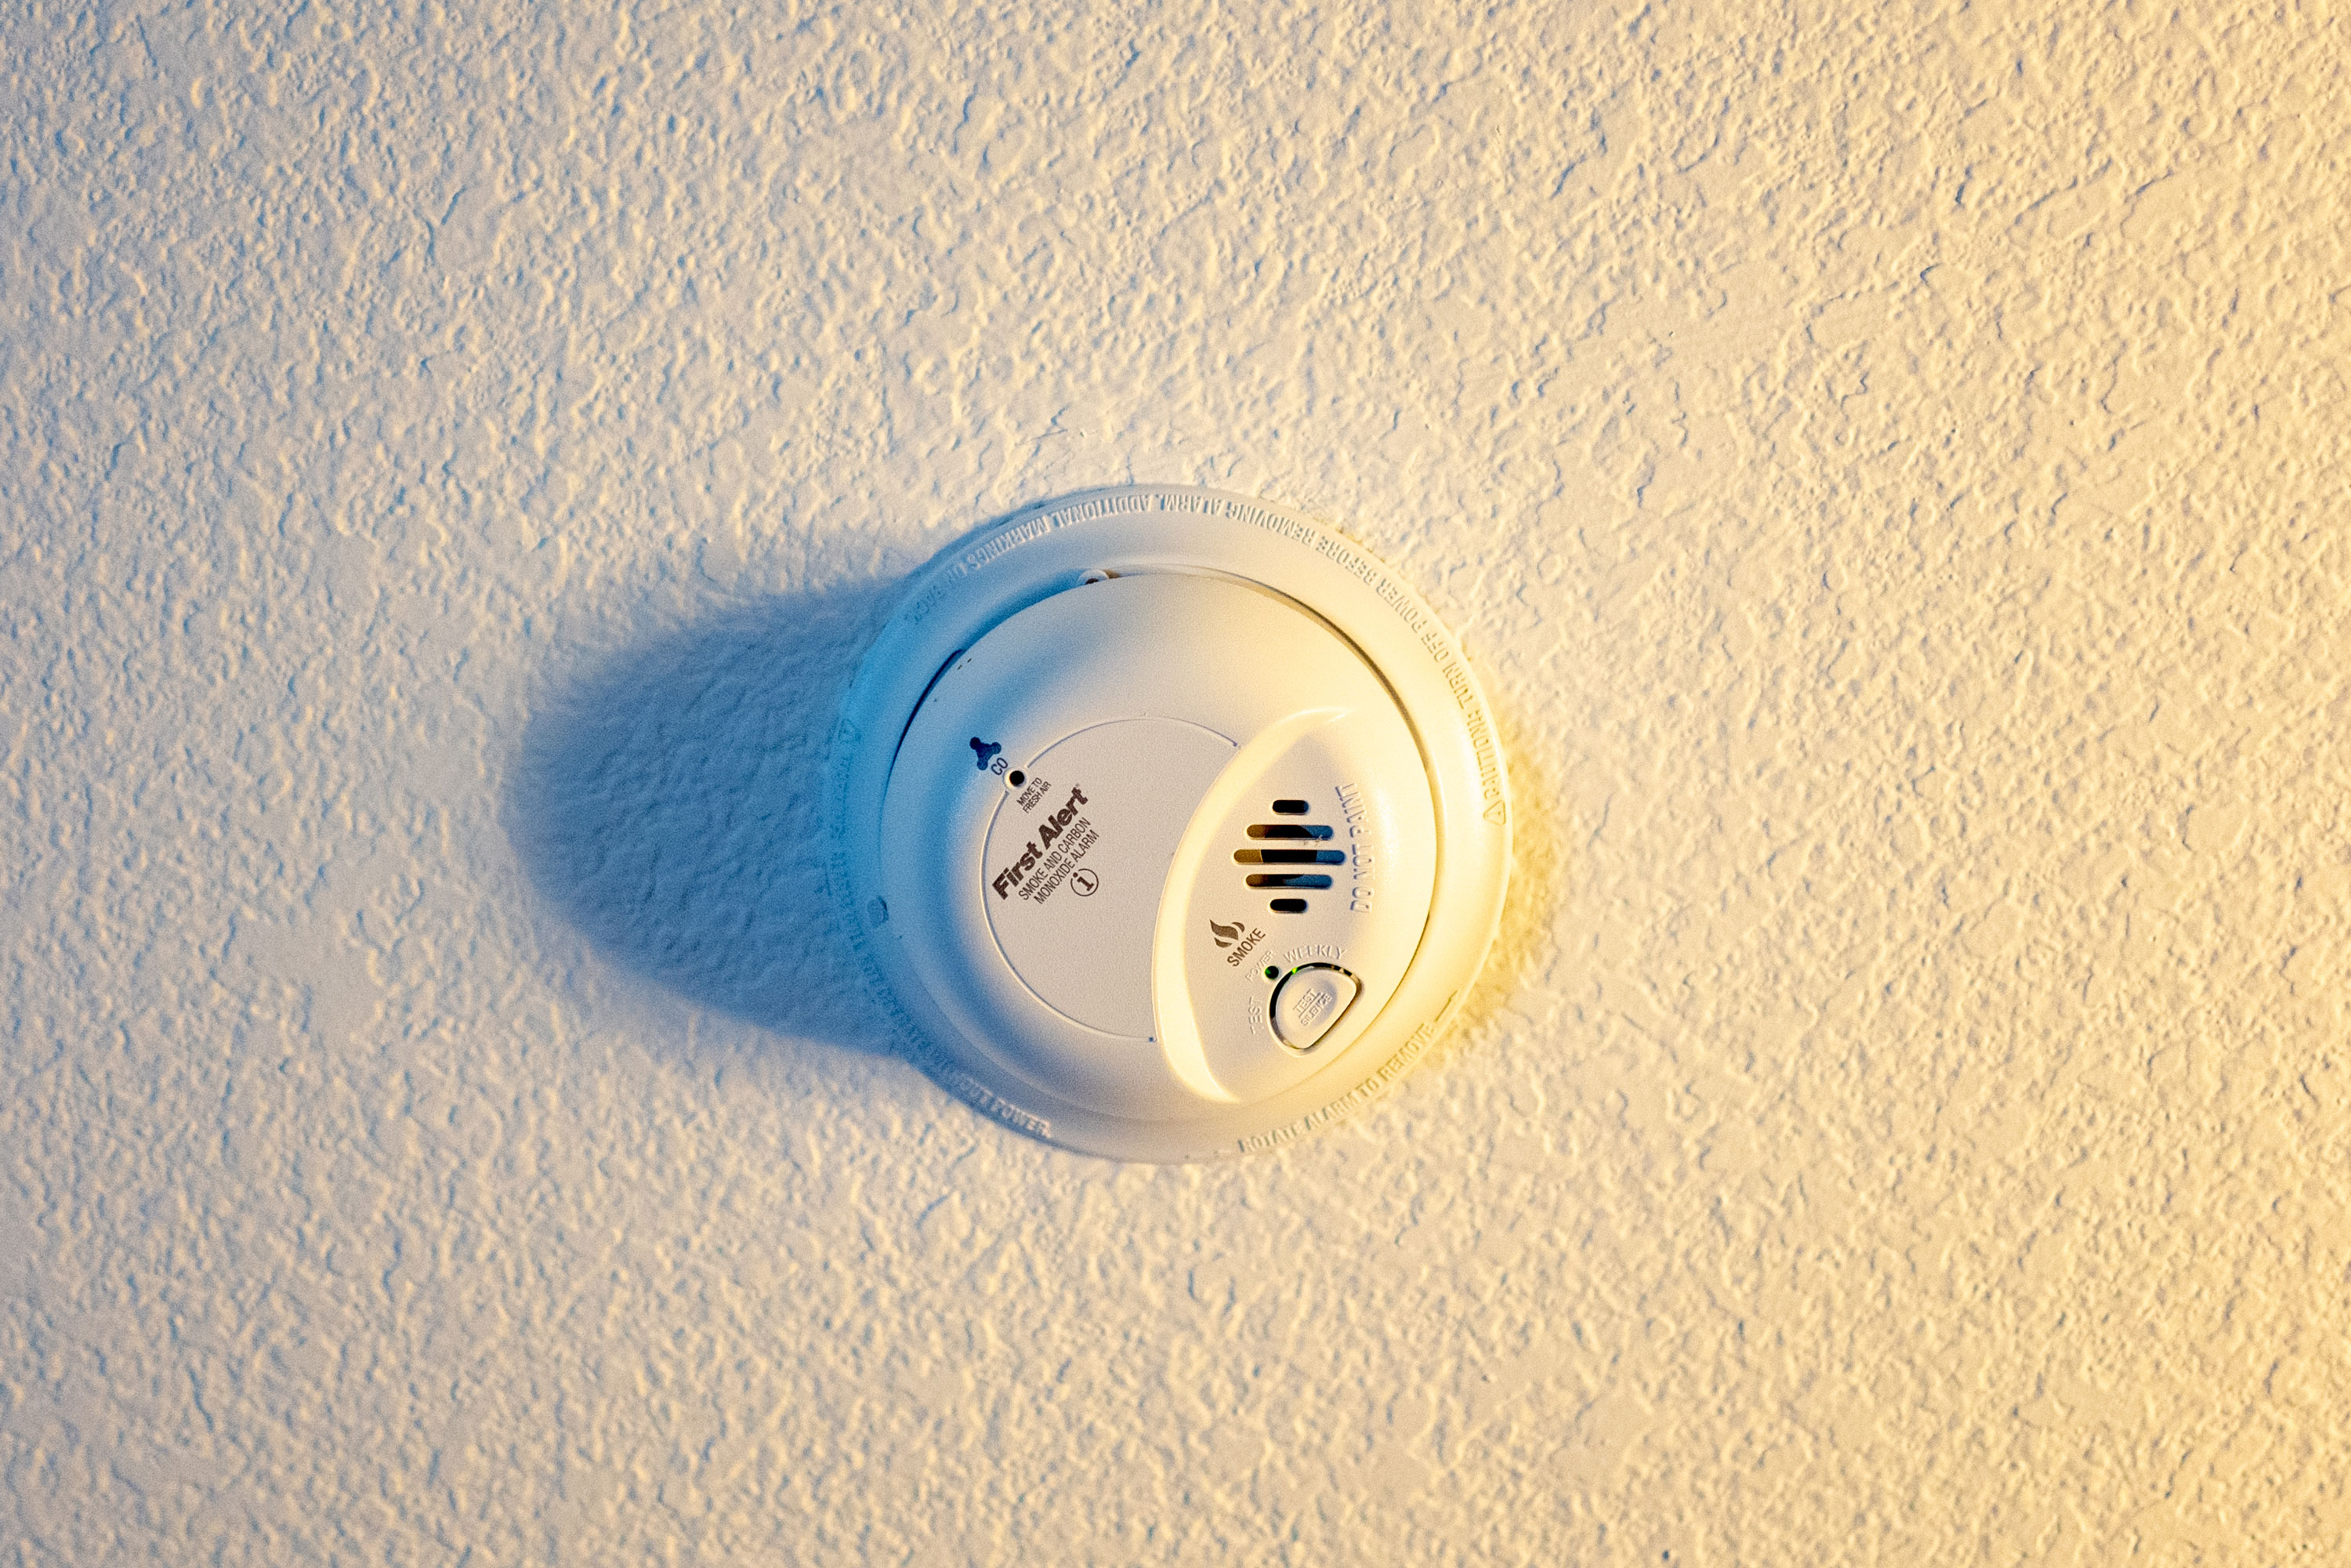 Carbon monoxide poisoning or Covid-19? Here's how you can tell